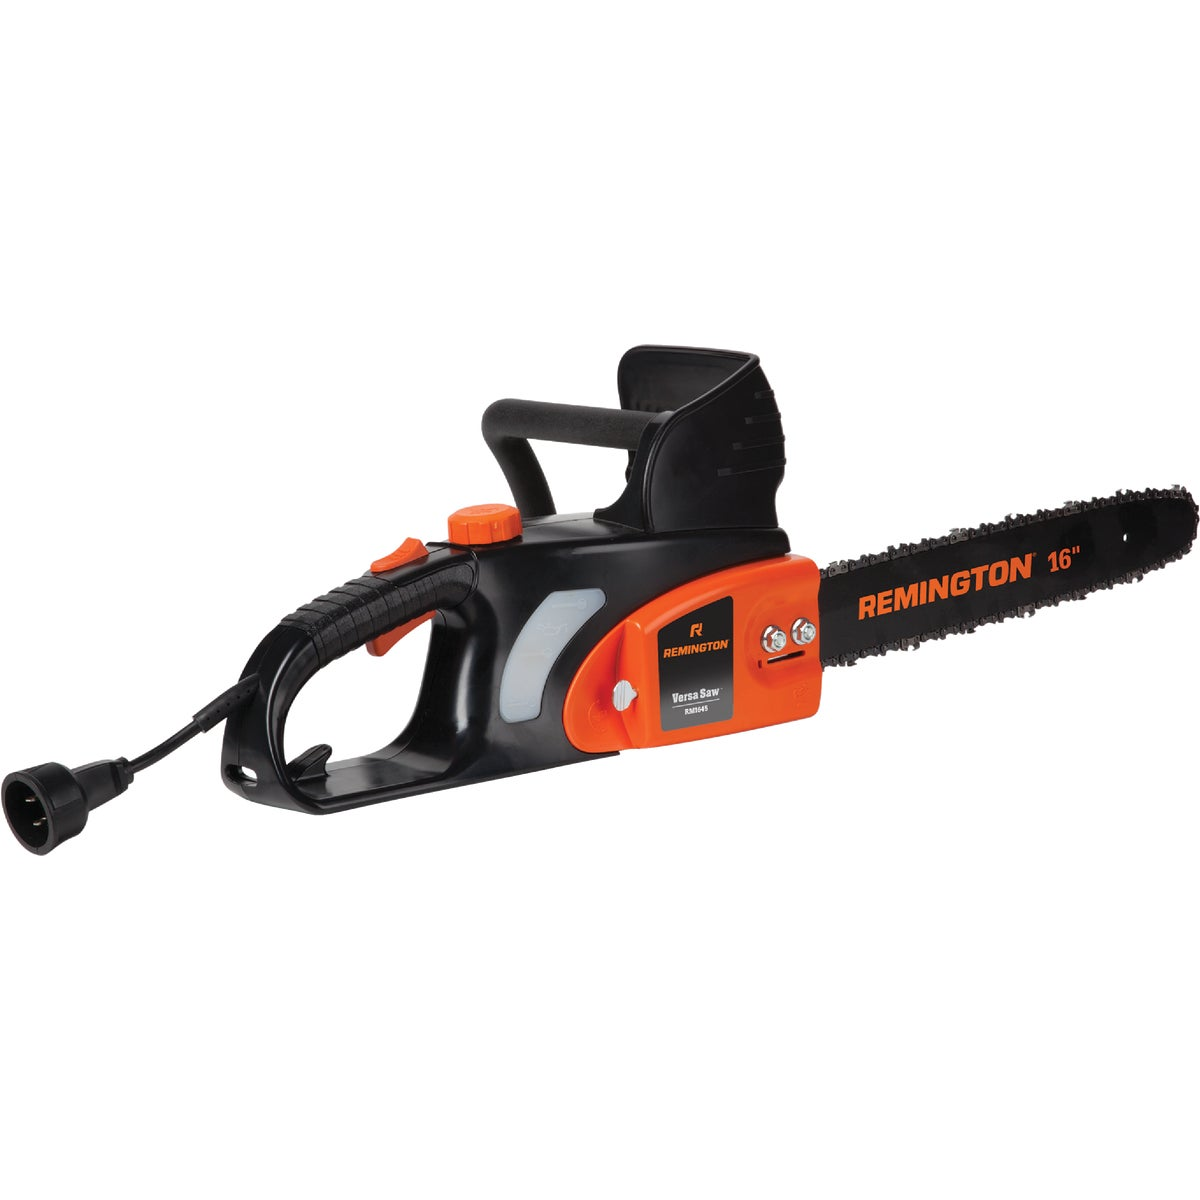 "16"" ELECTRIC CHAIN SAW - 41BZ56WG983 by M T D Southwest Inc"